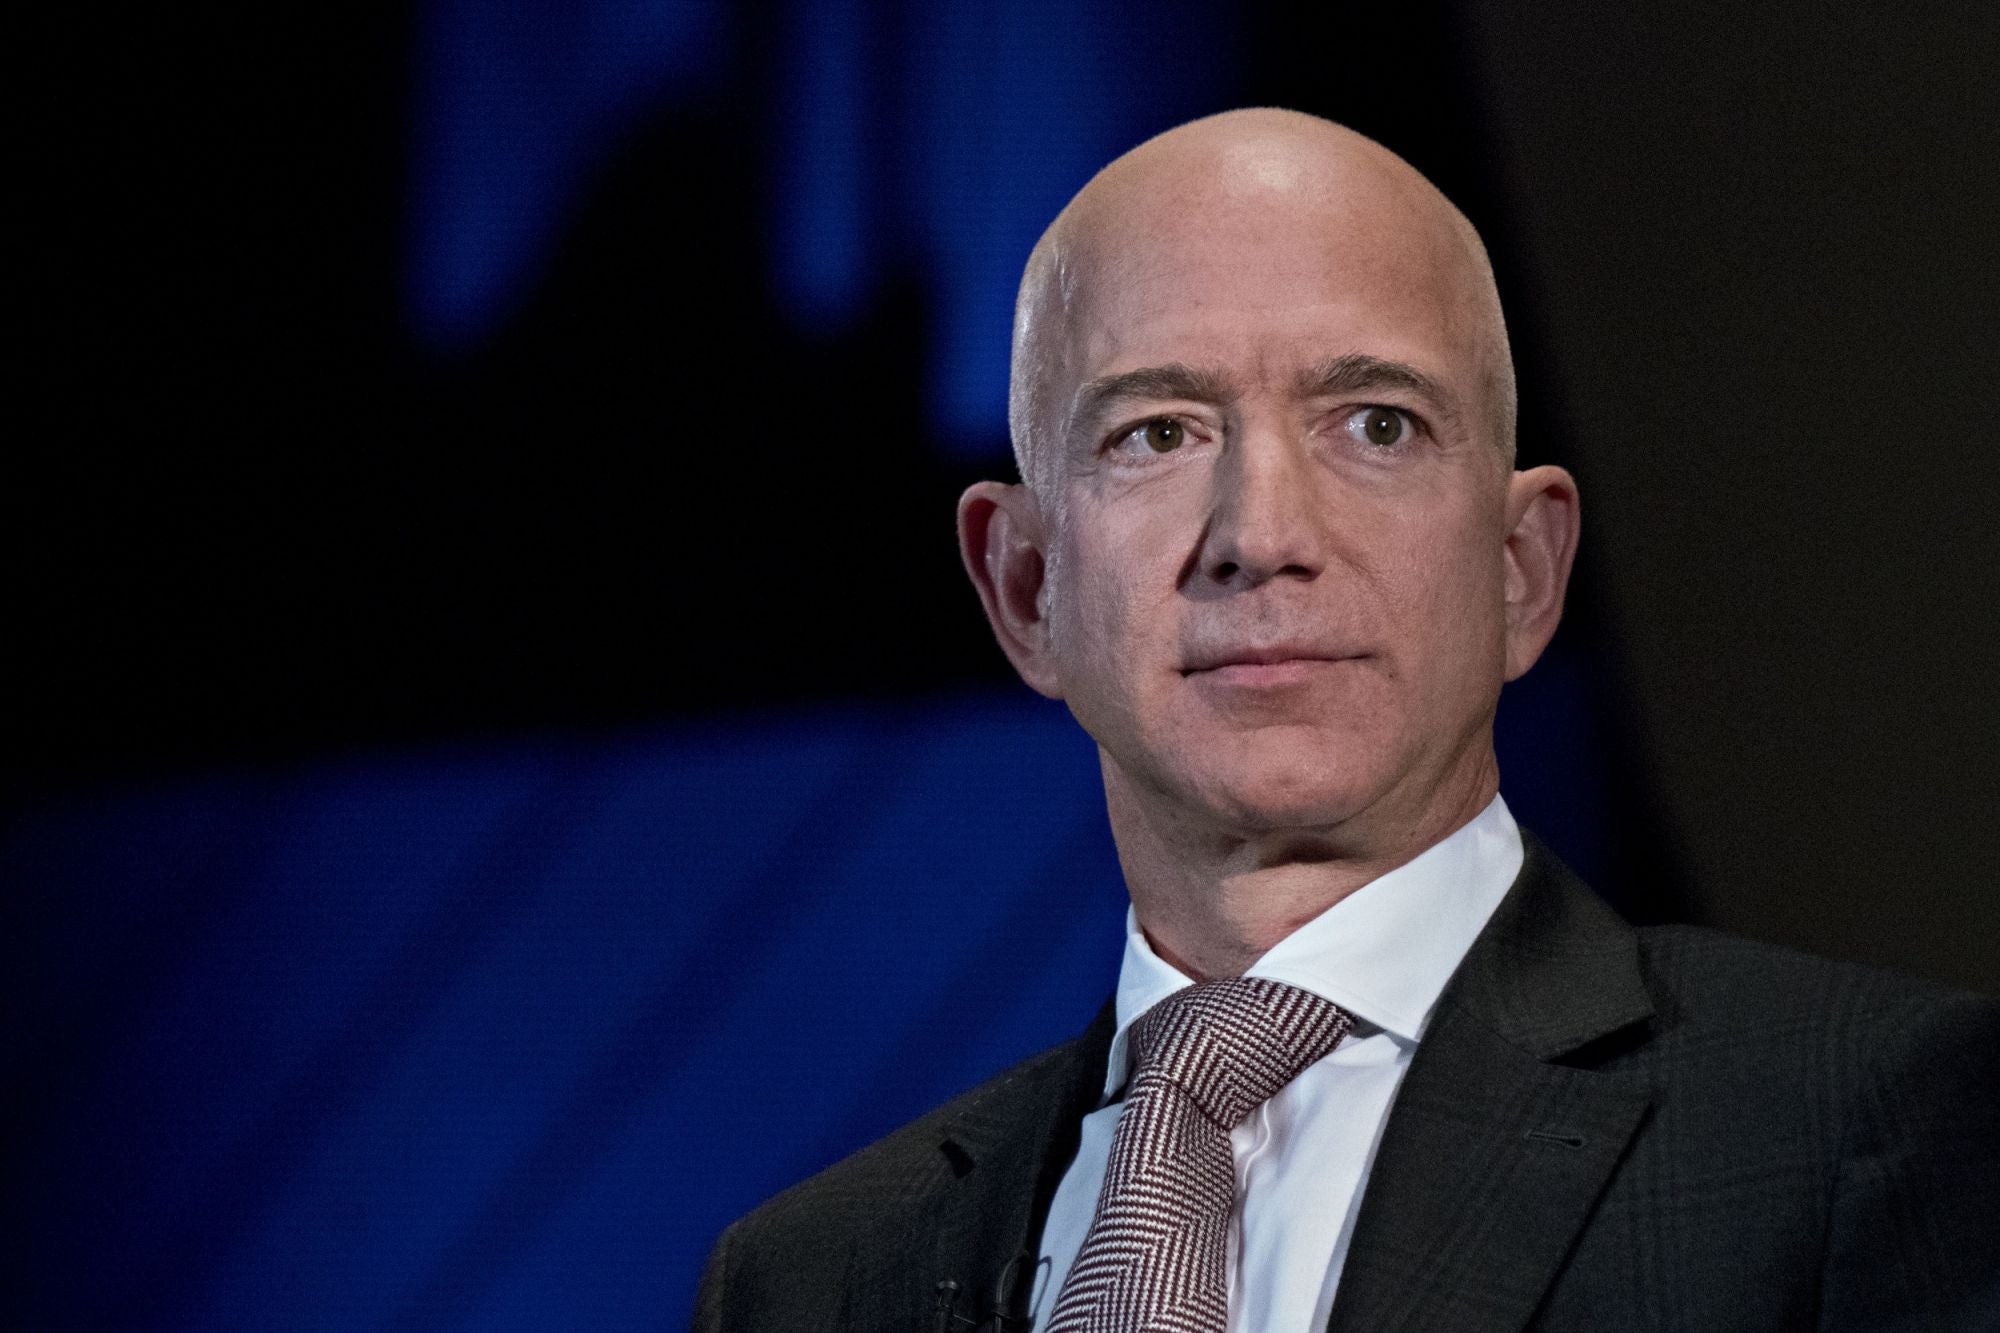 Jeff Bezos Bombshell Sinks Amazon Stock